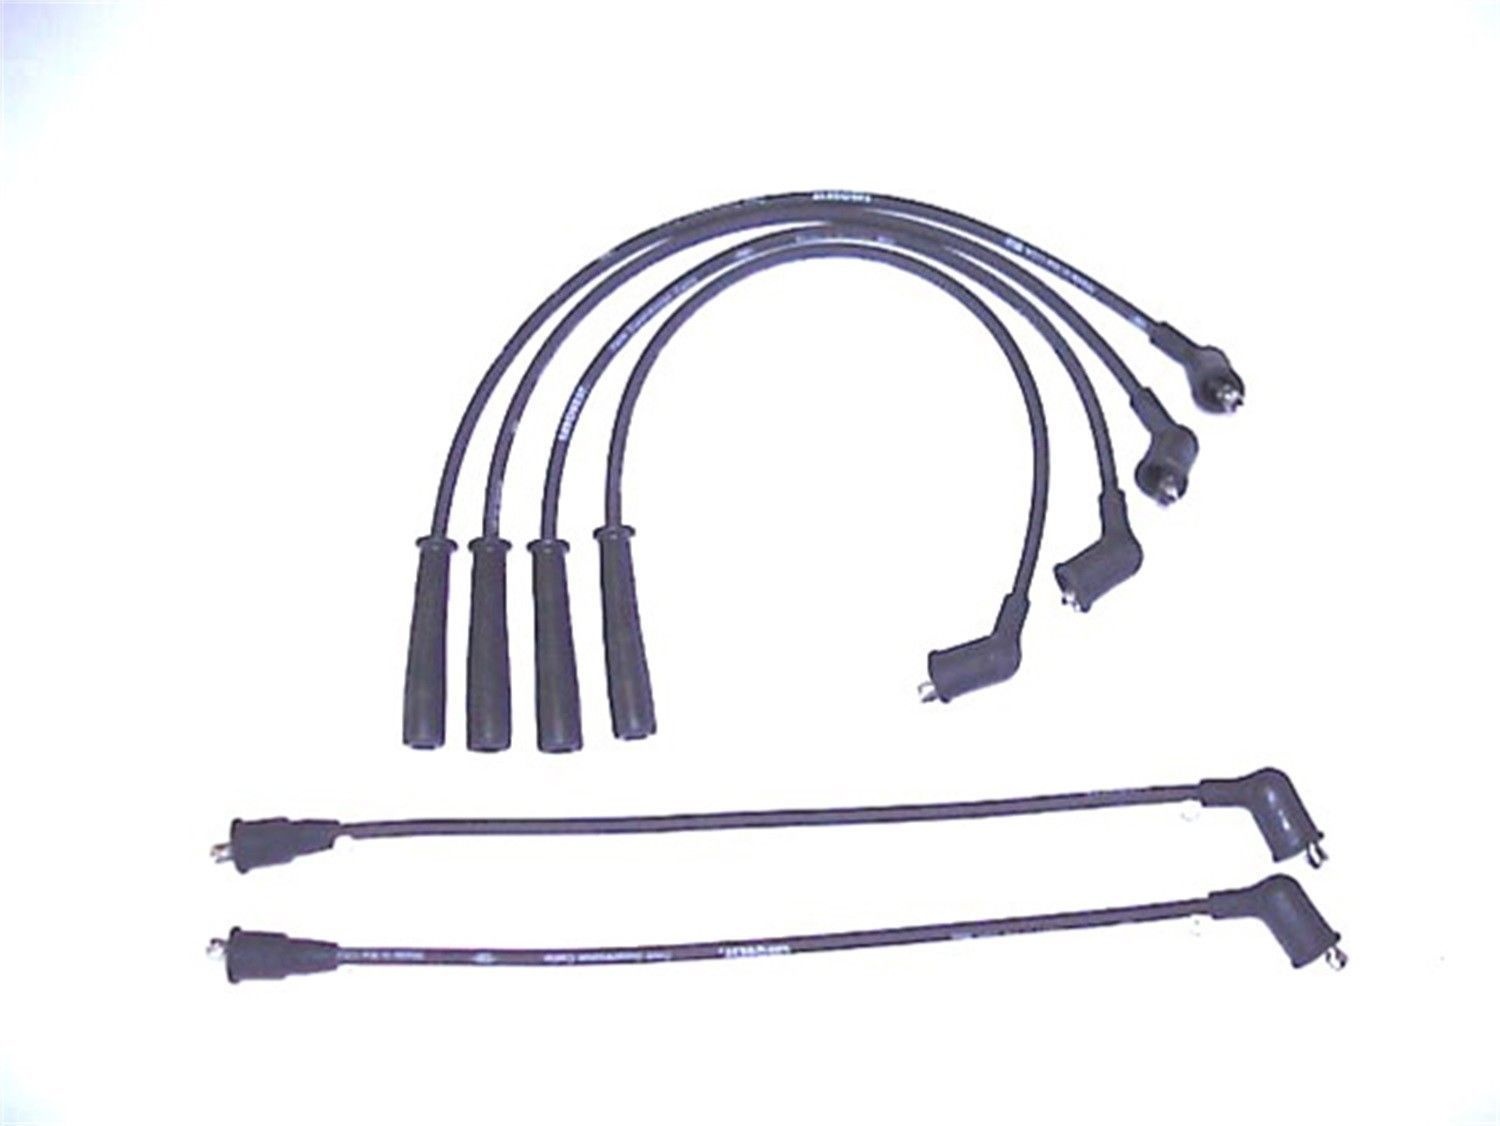 Xact Spark Plug Wire Set - 2833 on